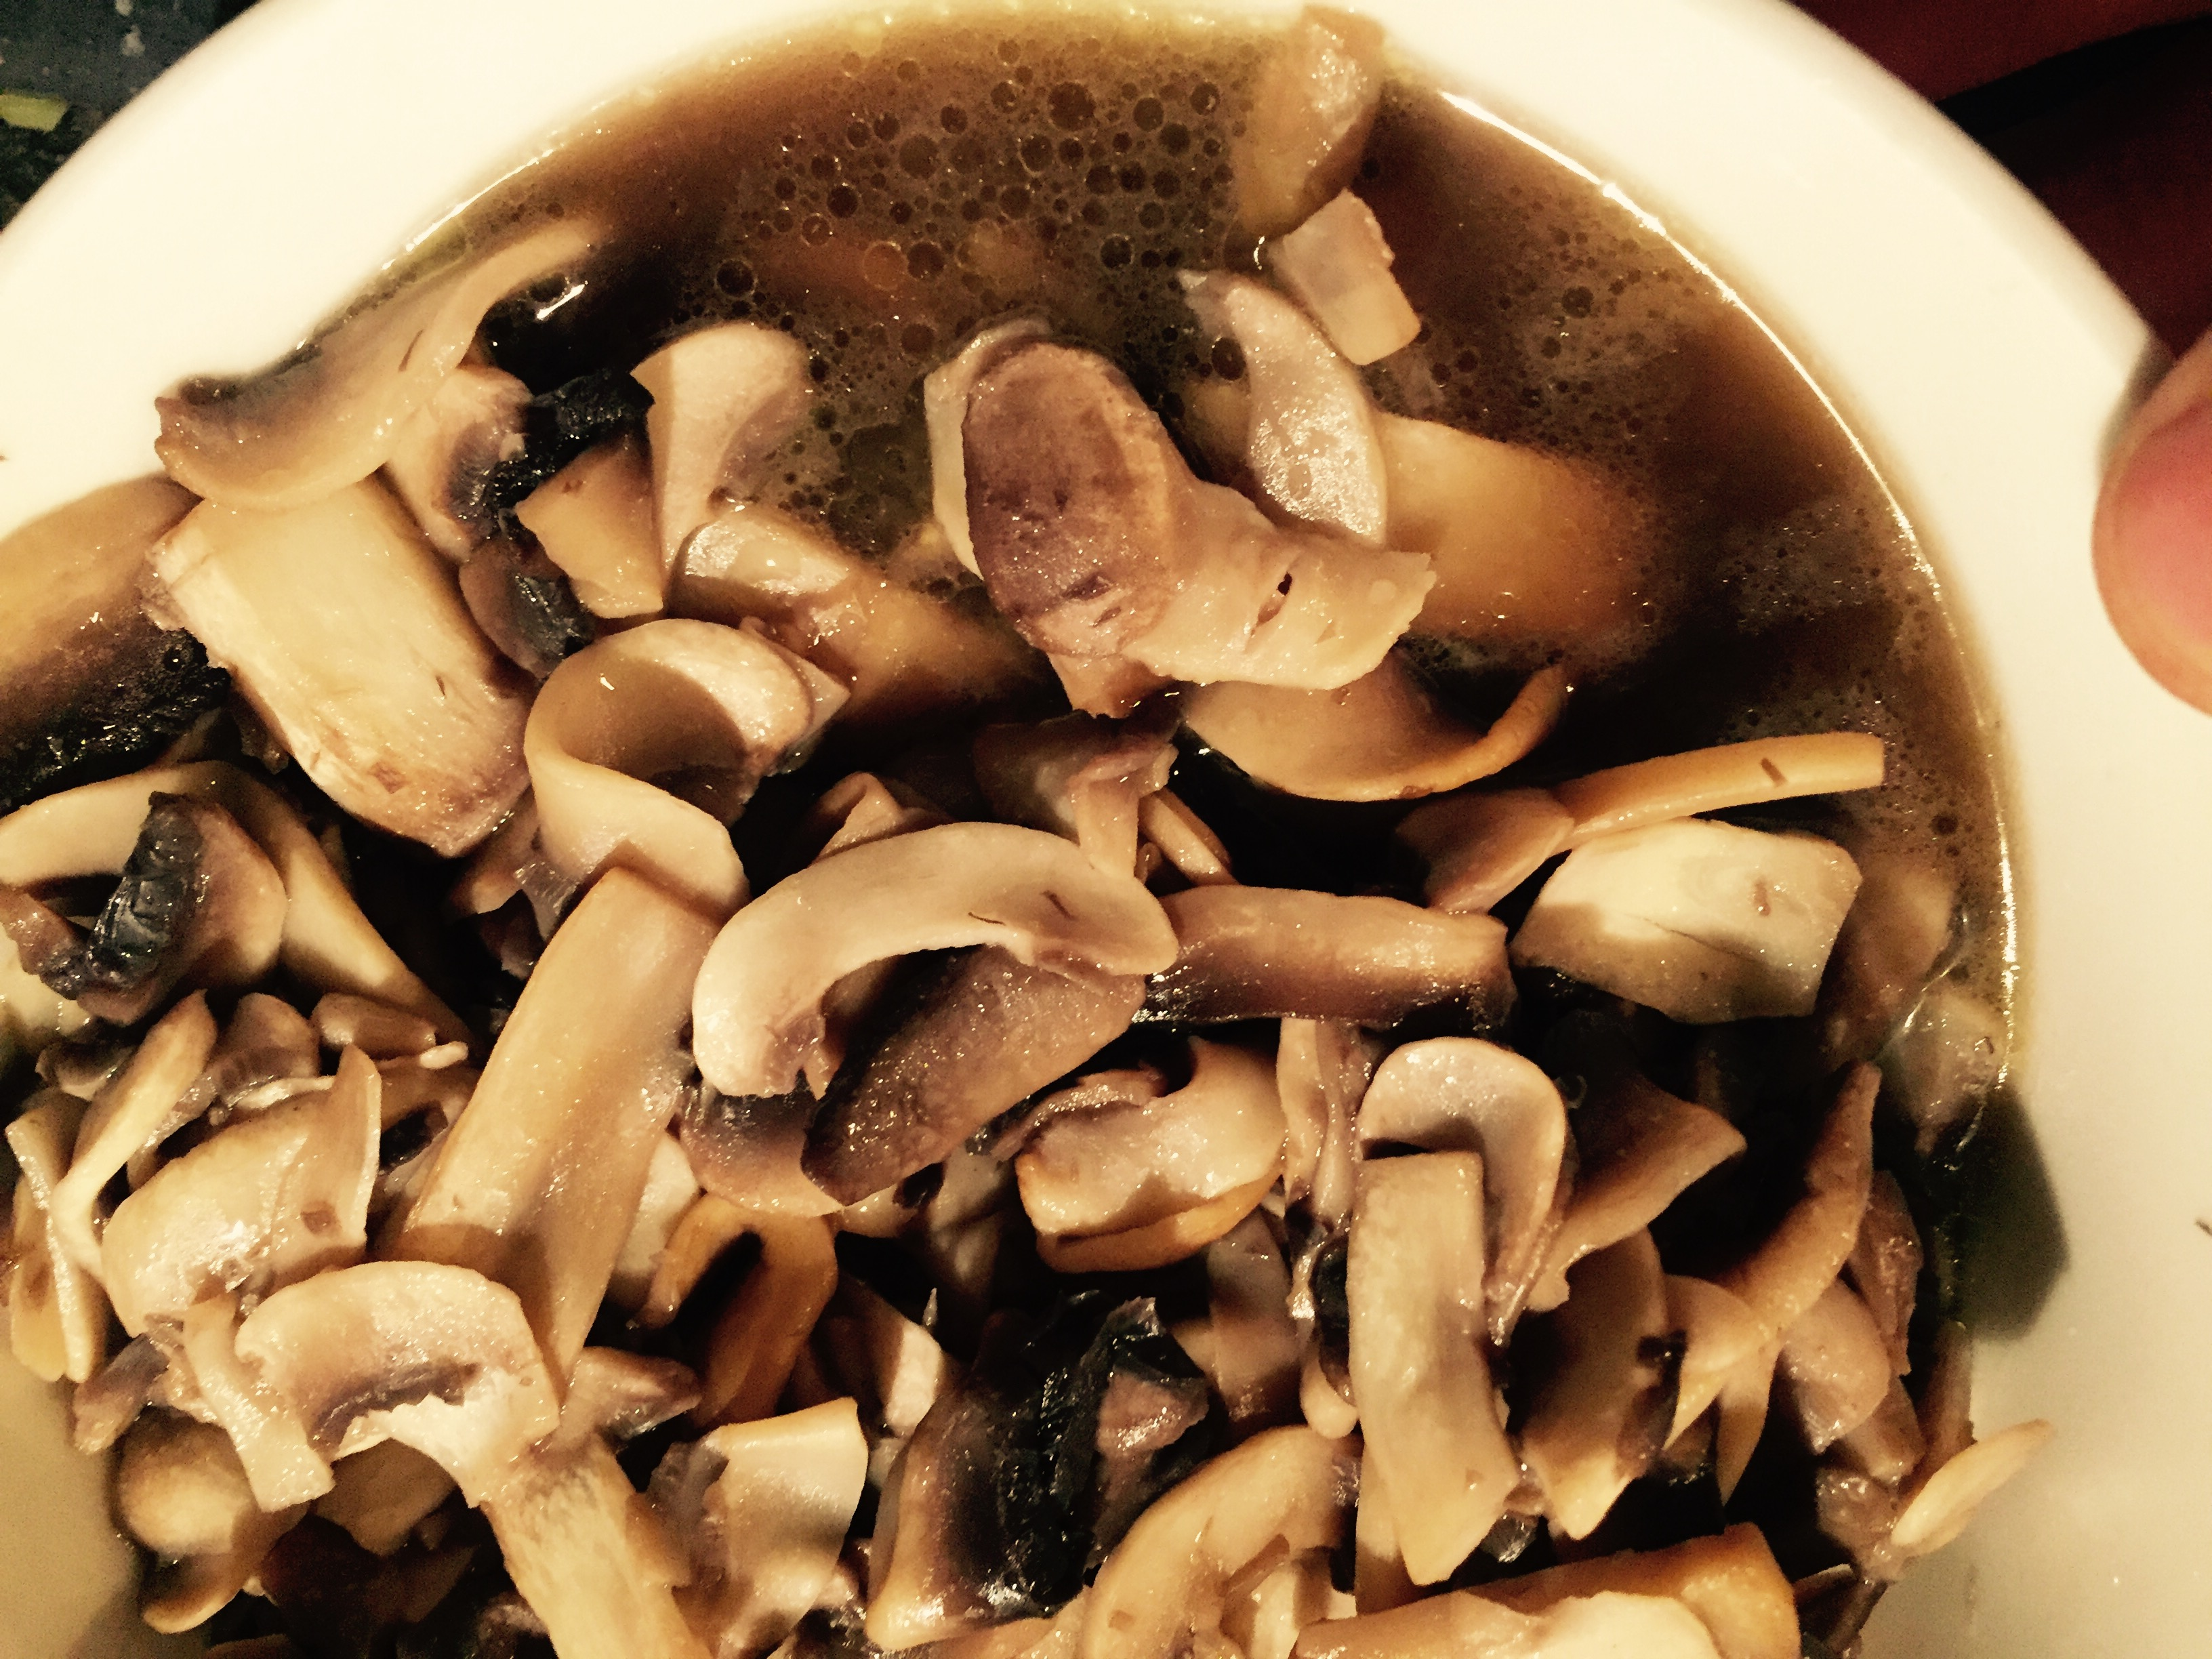 Mushrooms steeping in their own hearty juices